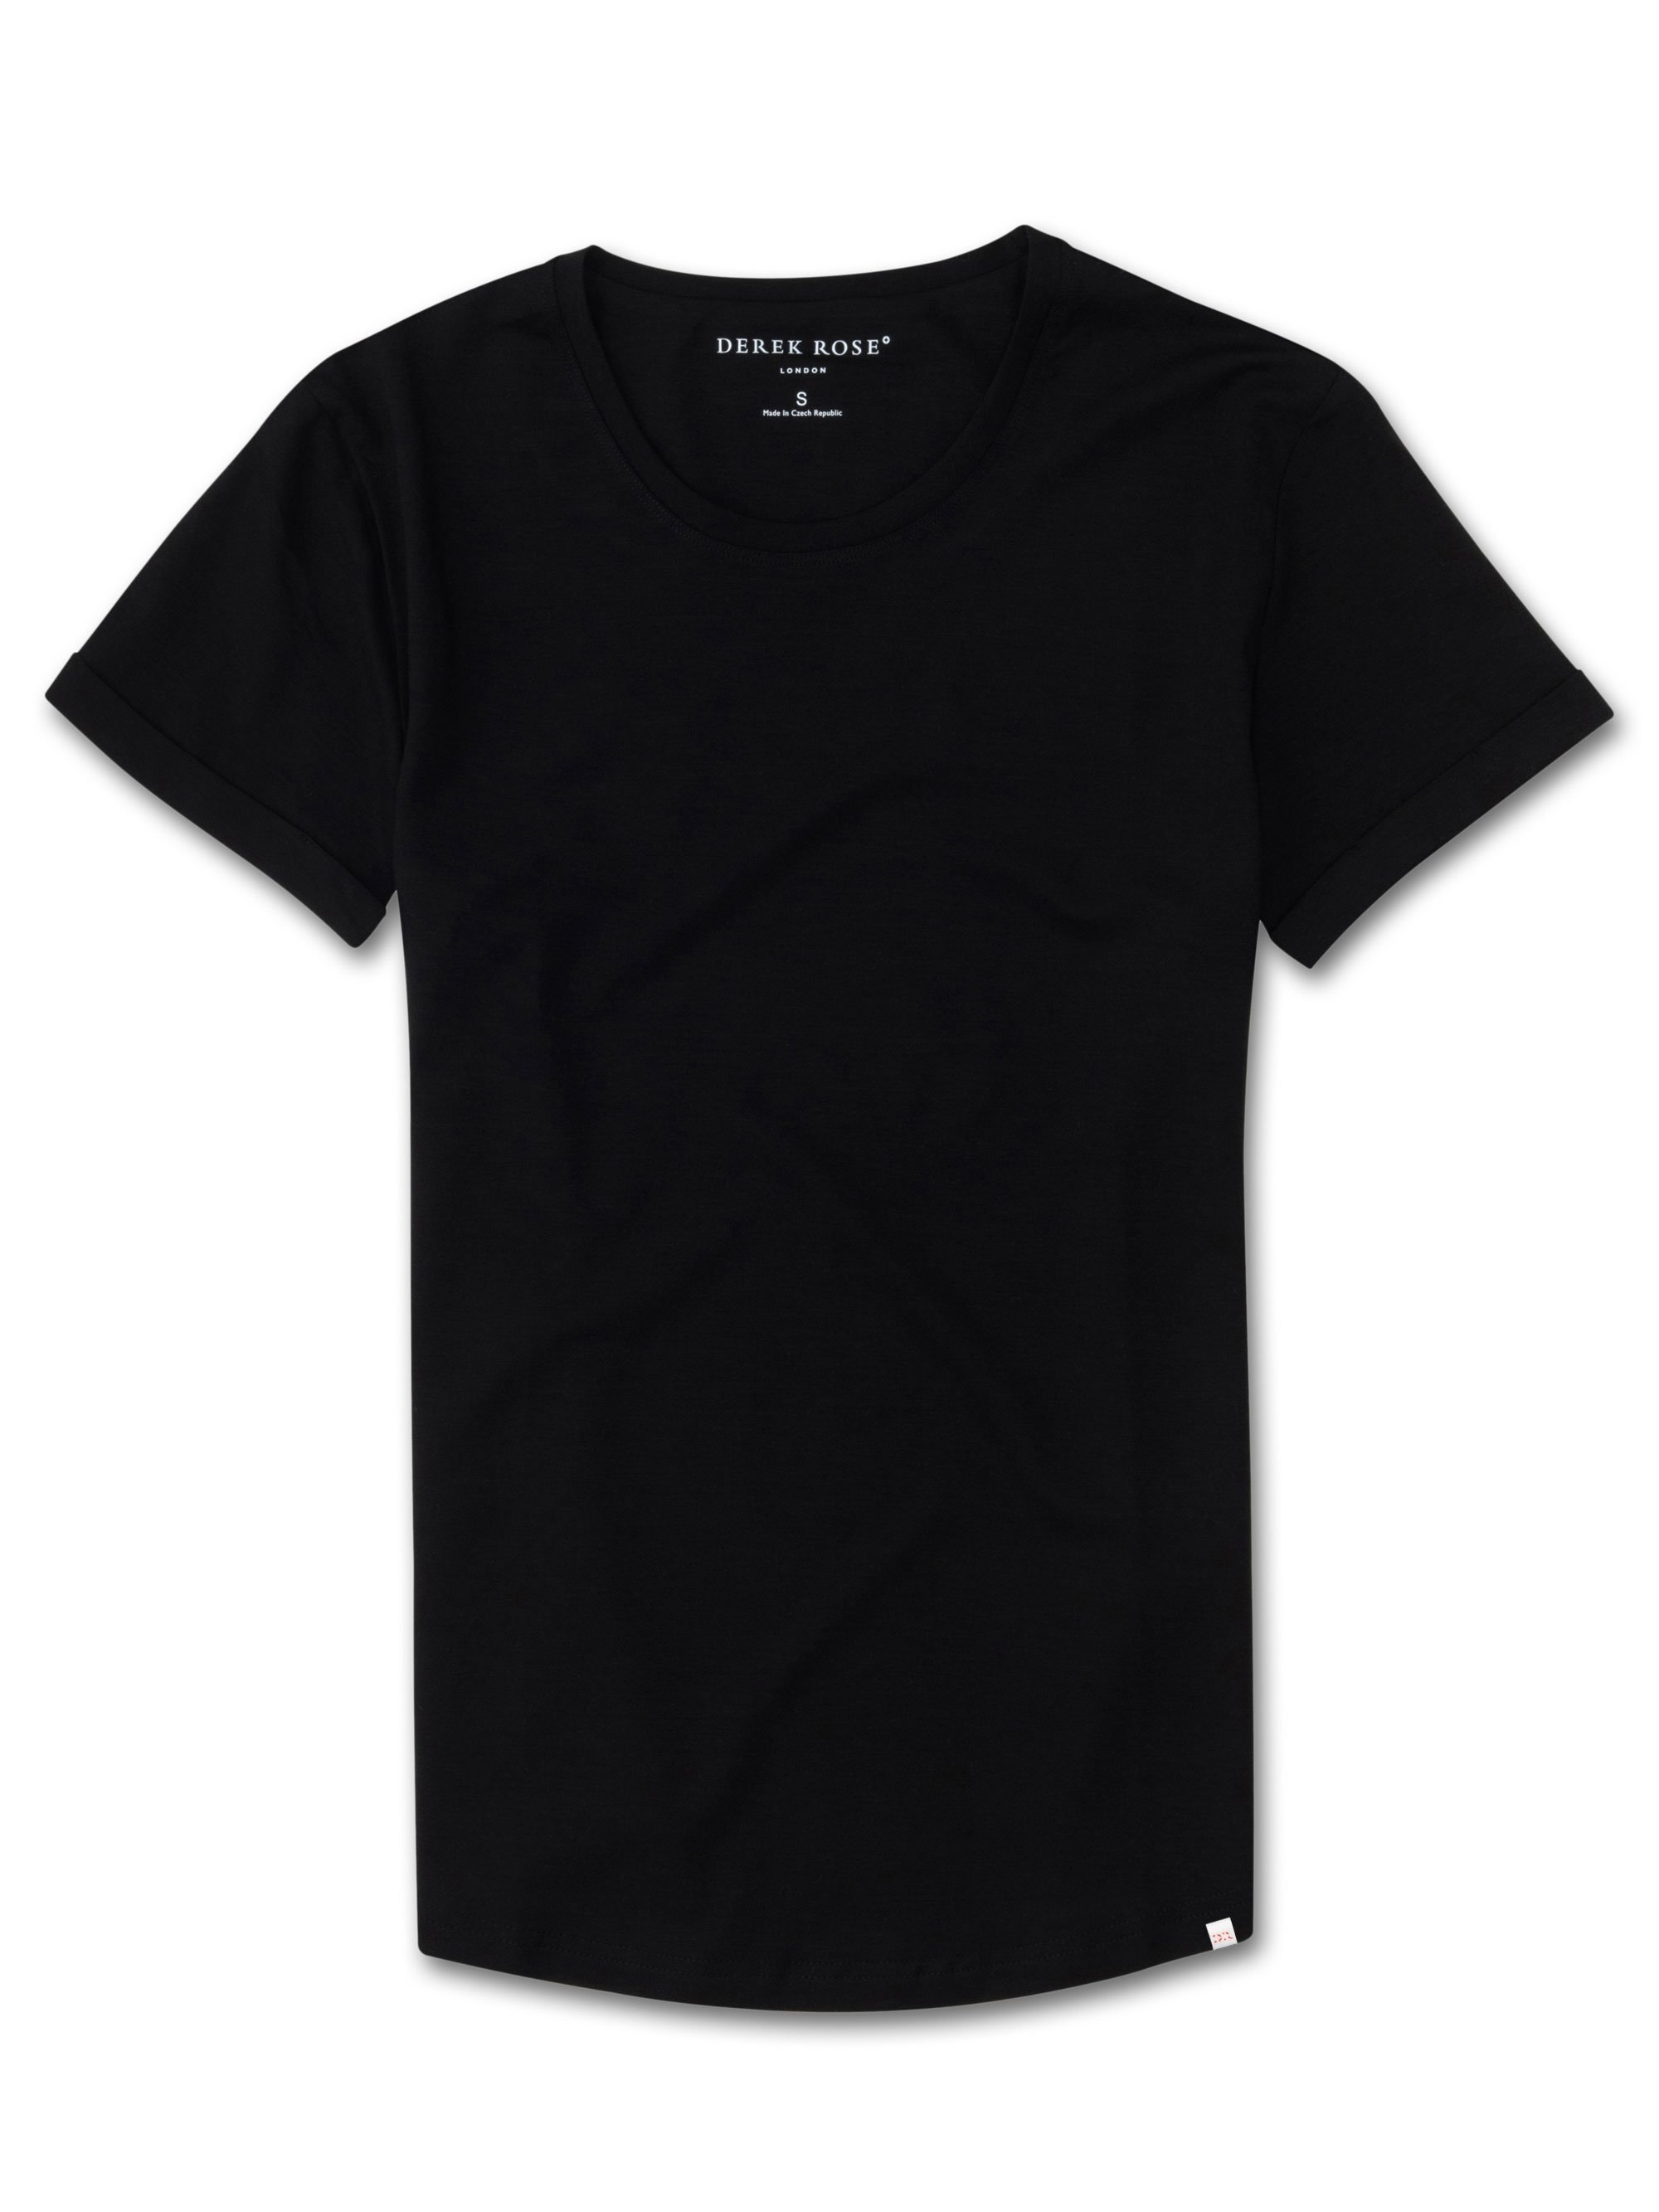 Women's Leisure T-Shirt Lara Micro Modal Stretch Black